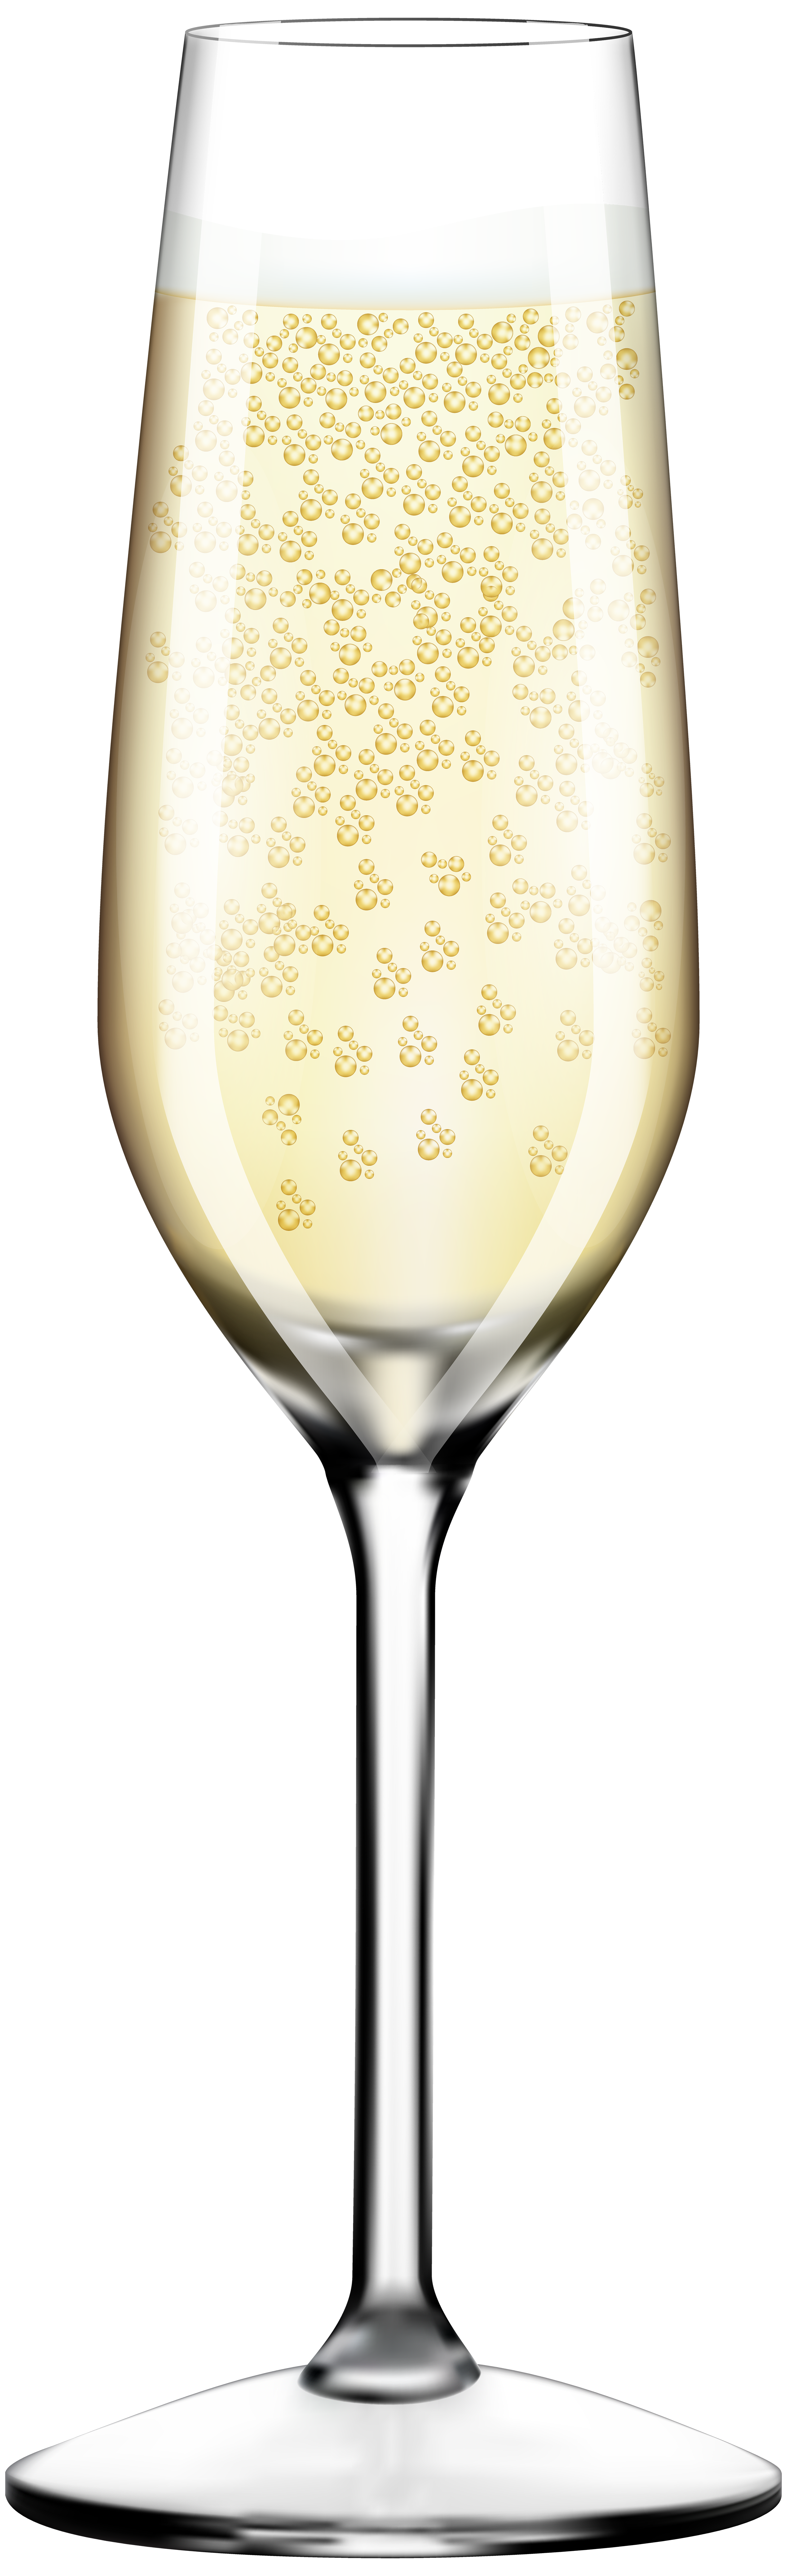 Mimosa glass png. Champagne clip art image